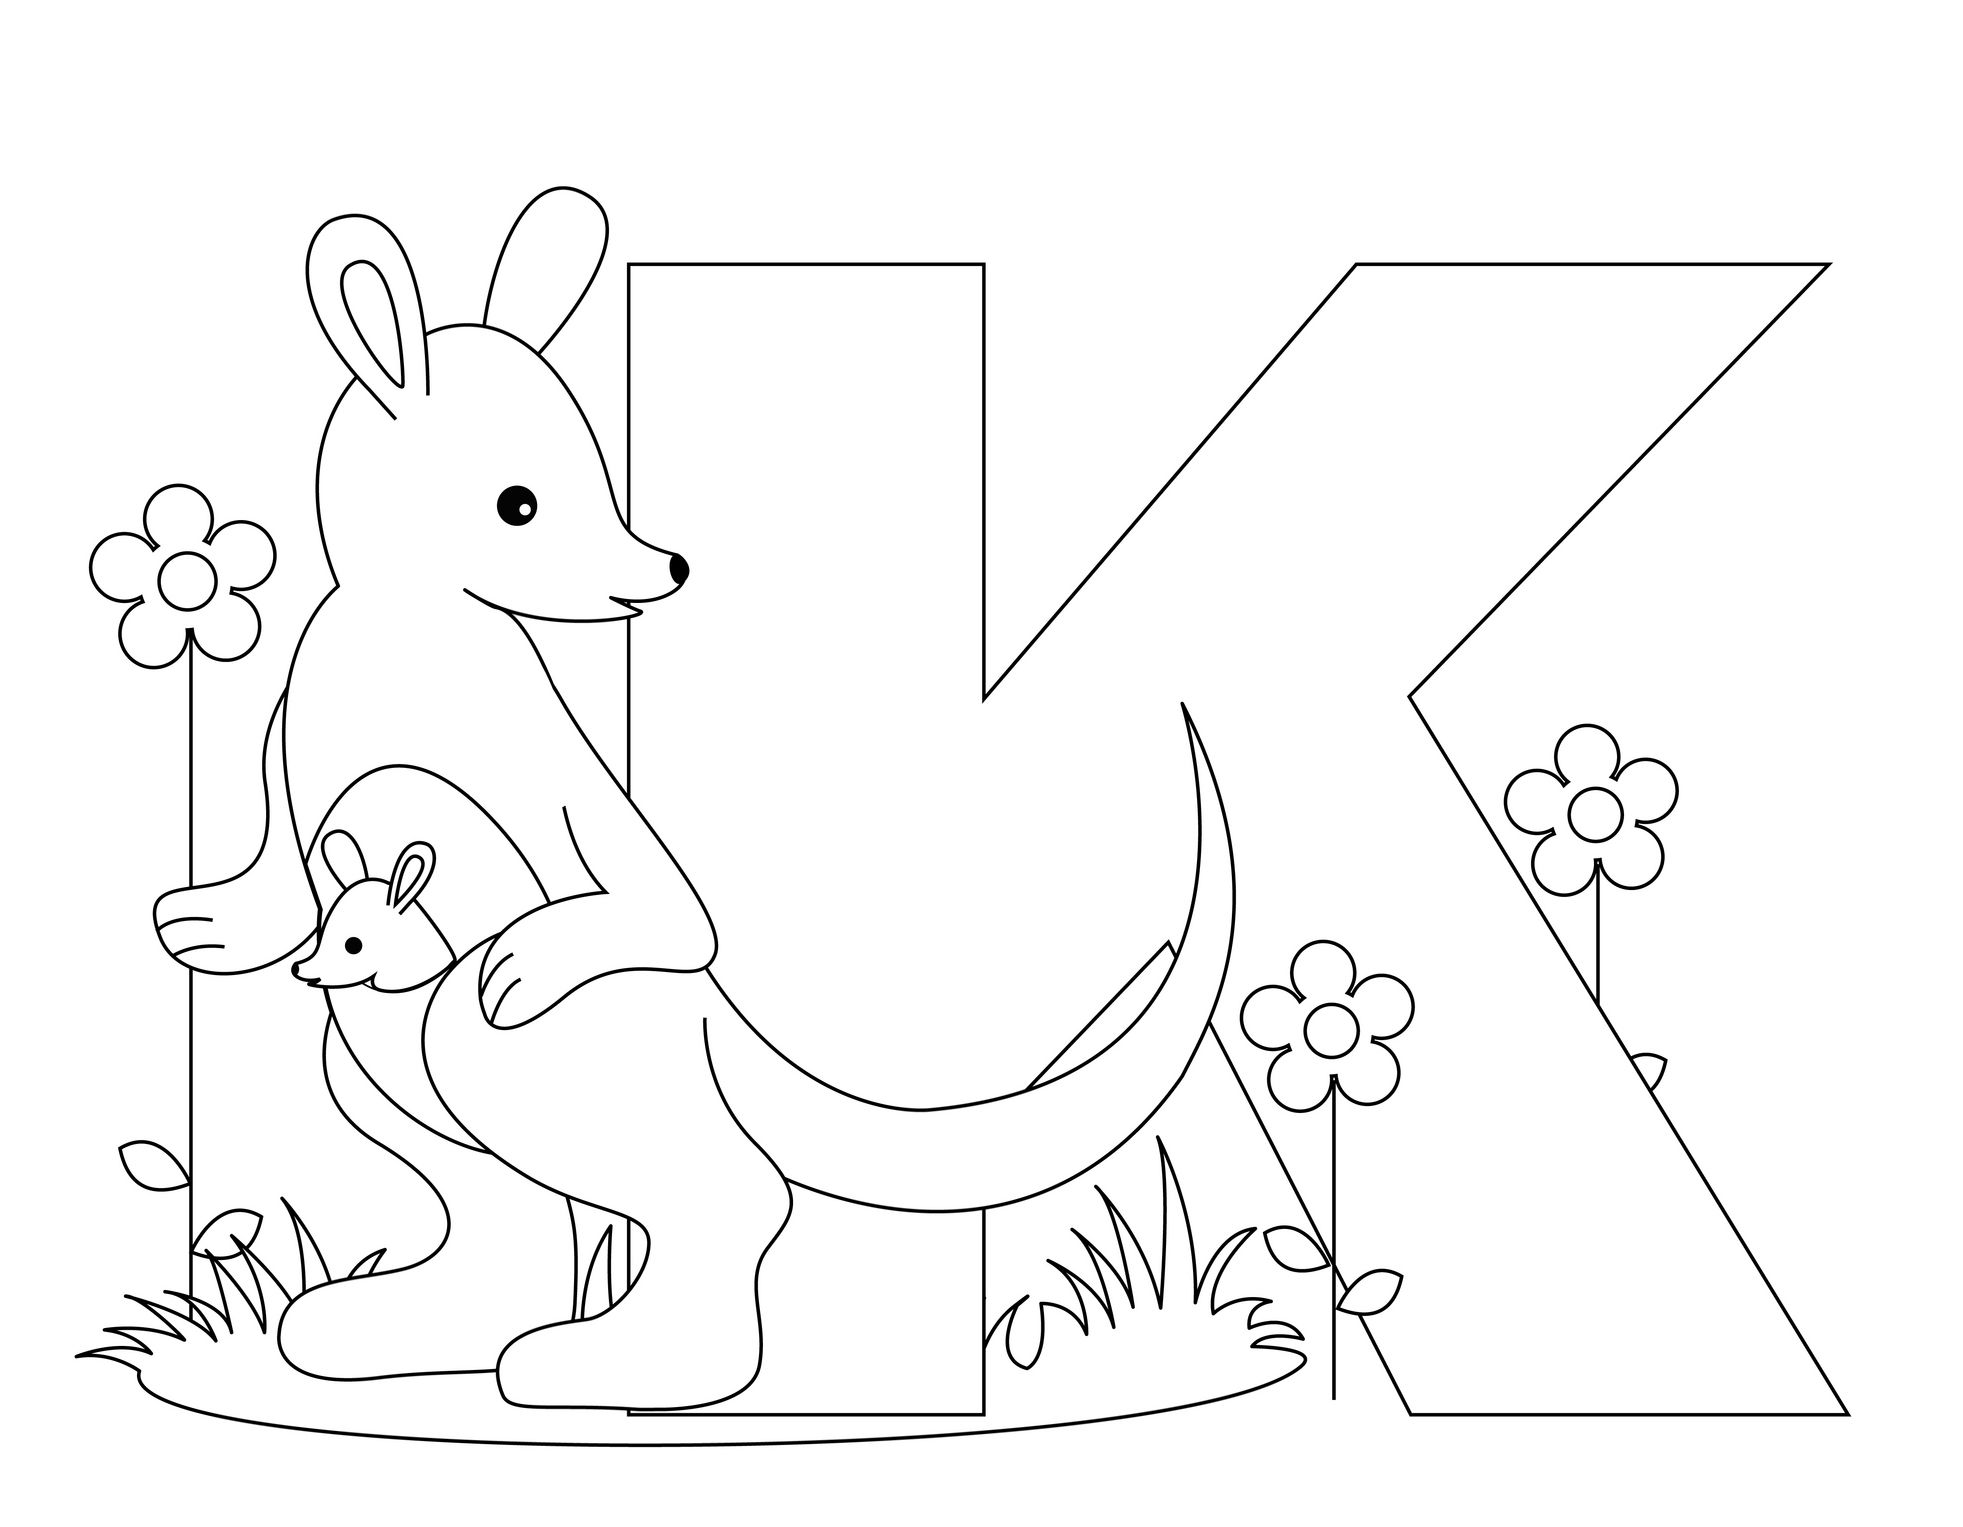 Abc sheets for preschool - Free Kindergarten Alphabet Worksheets Animal Alphabet Letter K Coloring Worksheet From Kiboomu Worksheets